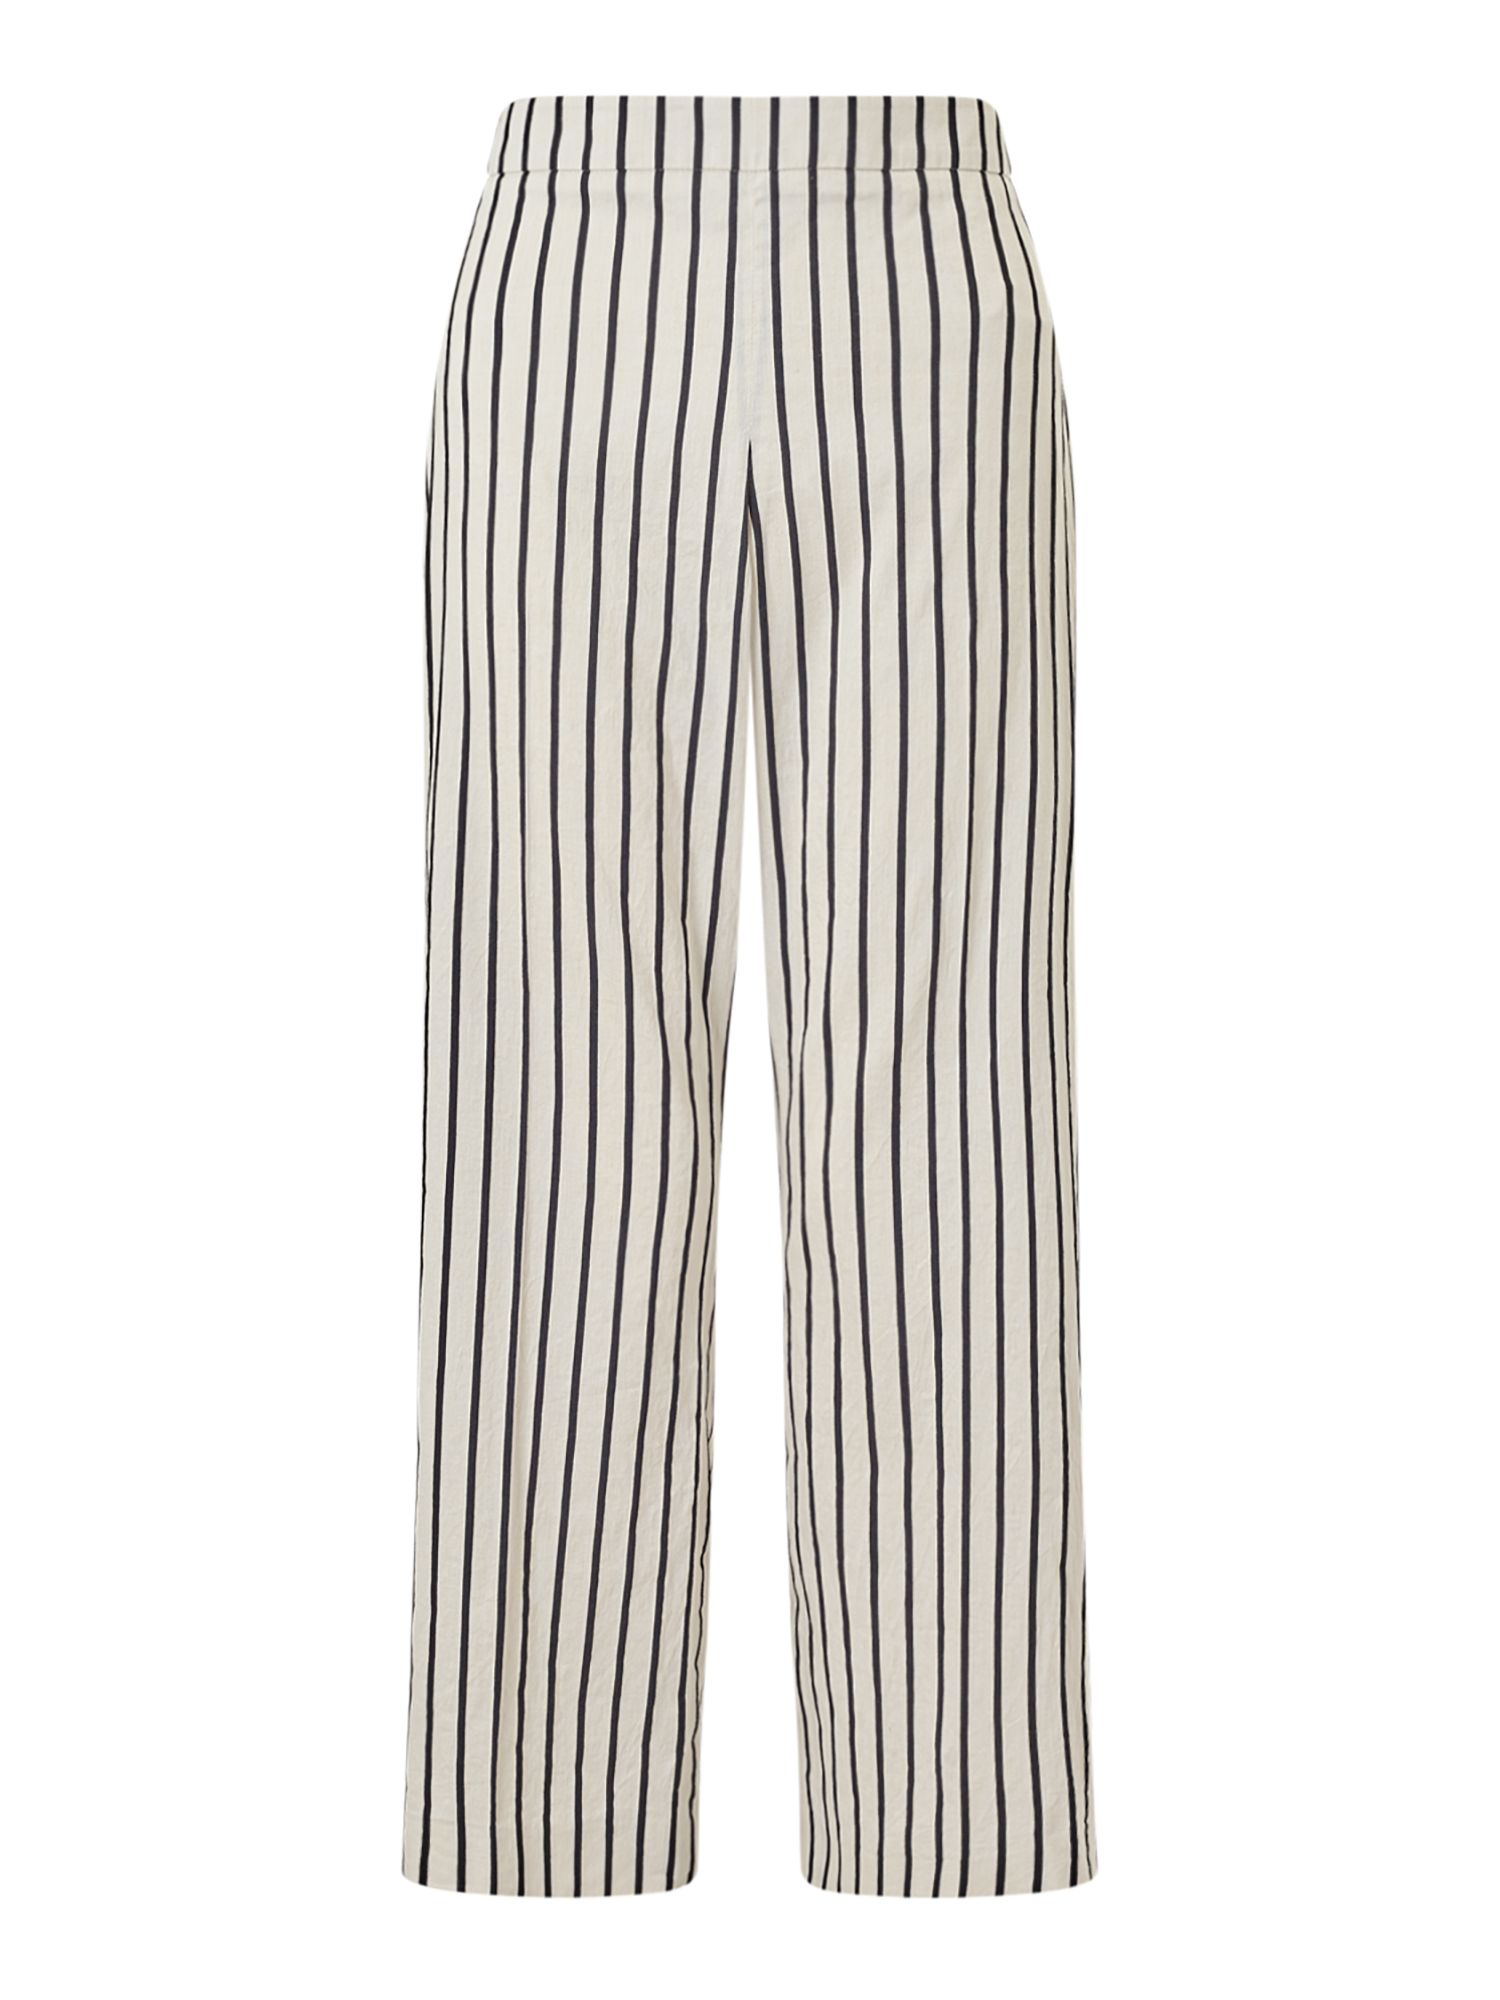 Jigsaw Stripe Linen Trouser, White